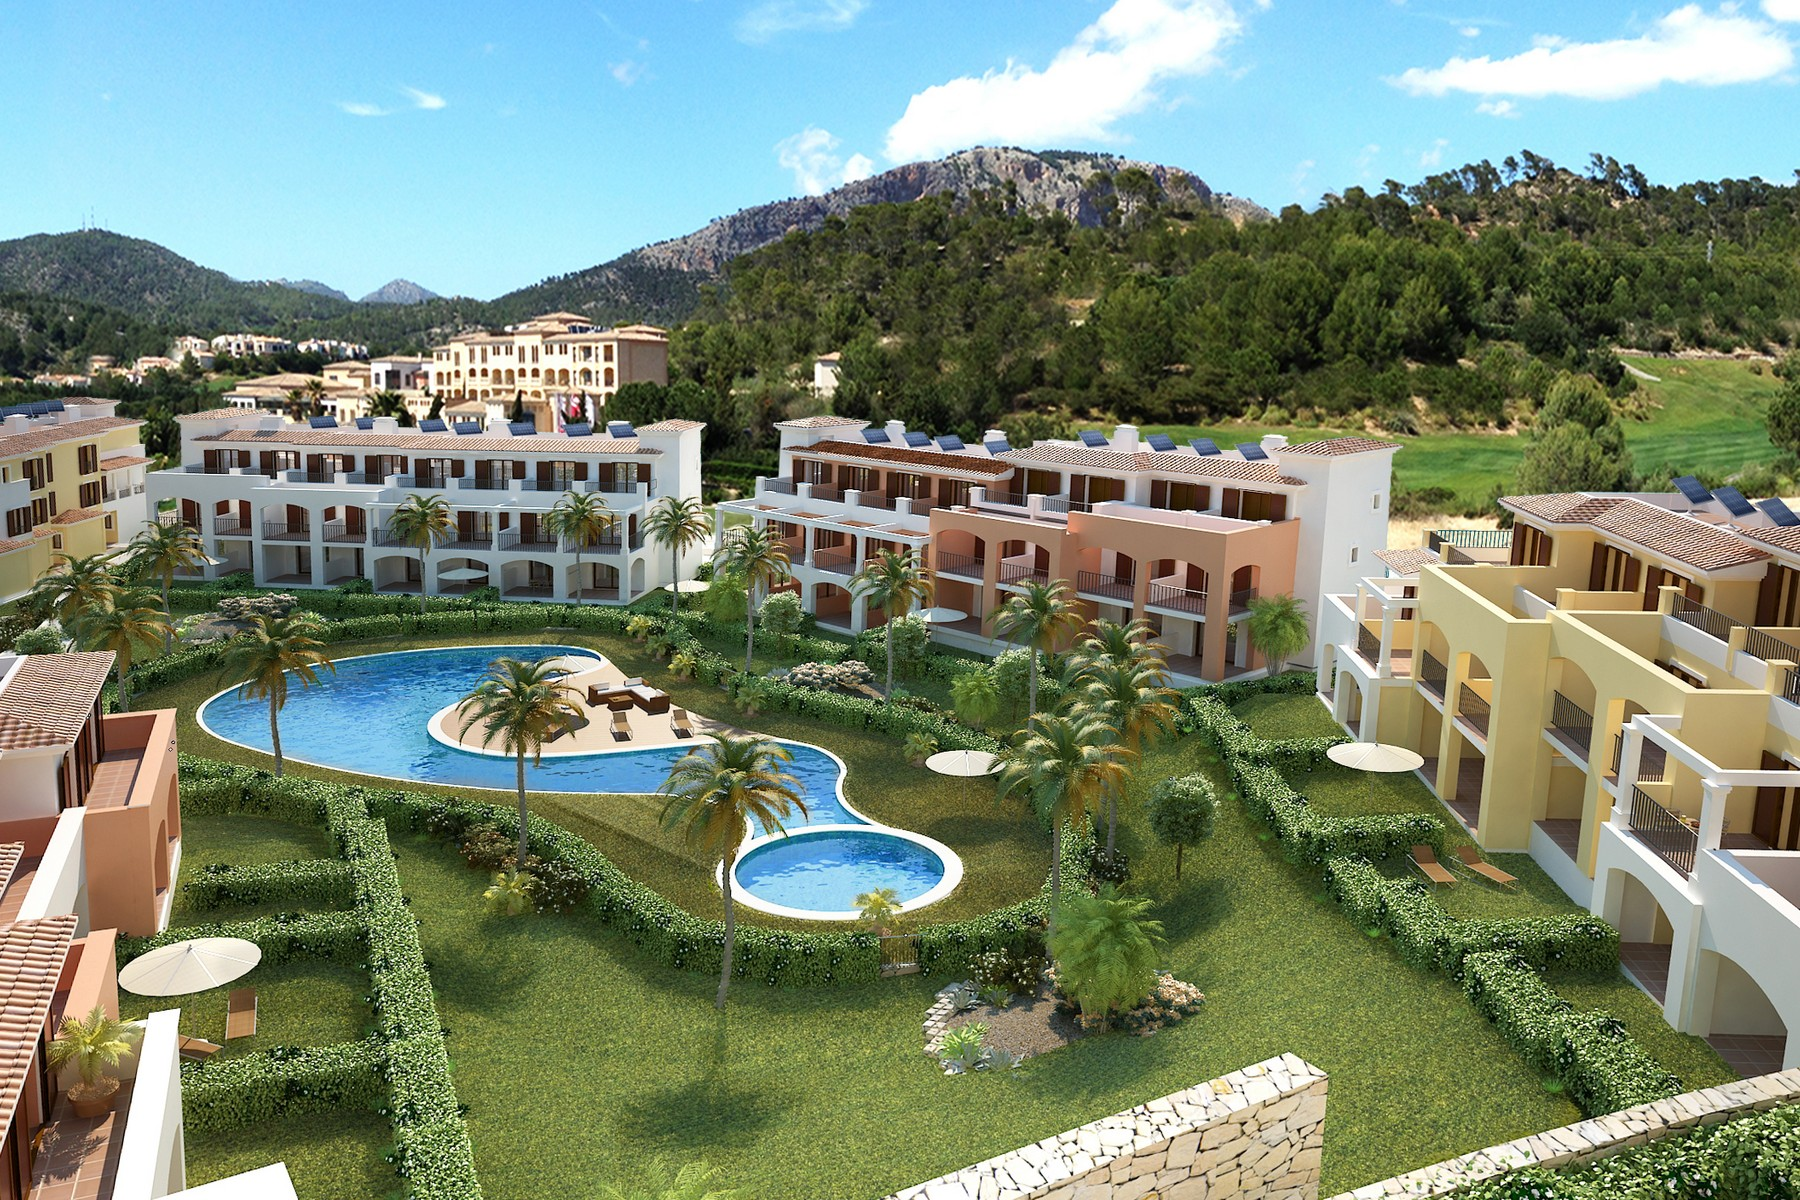 Condominio por un Venta en New townhouses near the beach in Camp de Mar Camp De Mar, Mallorca, 07160 España